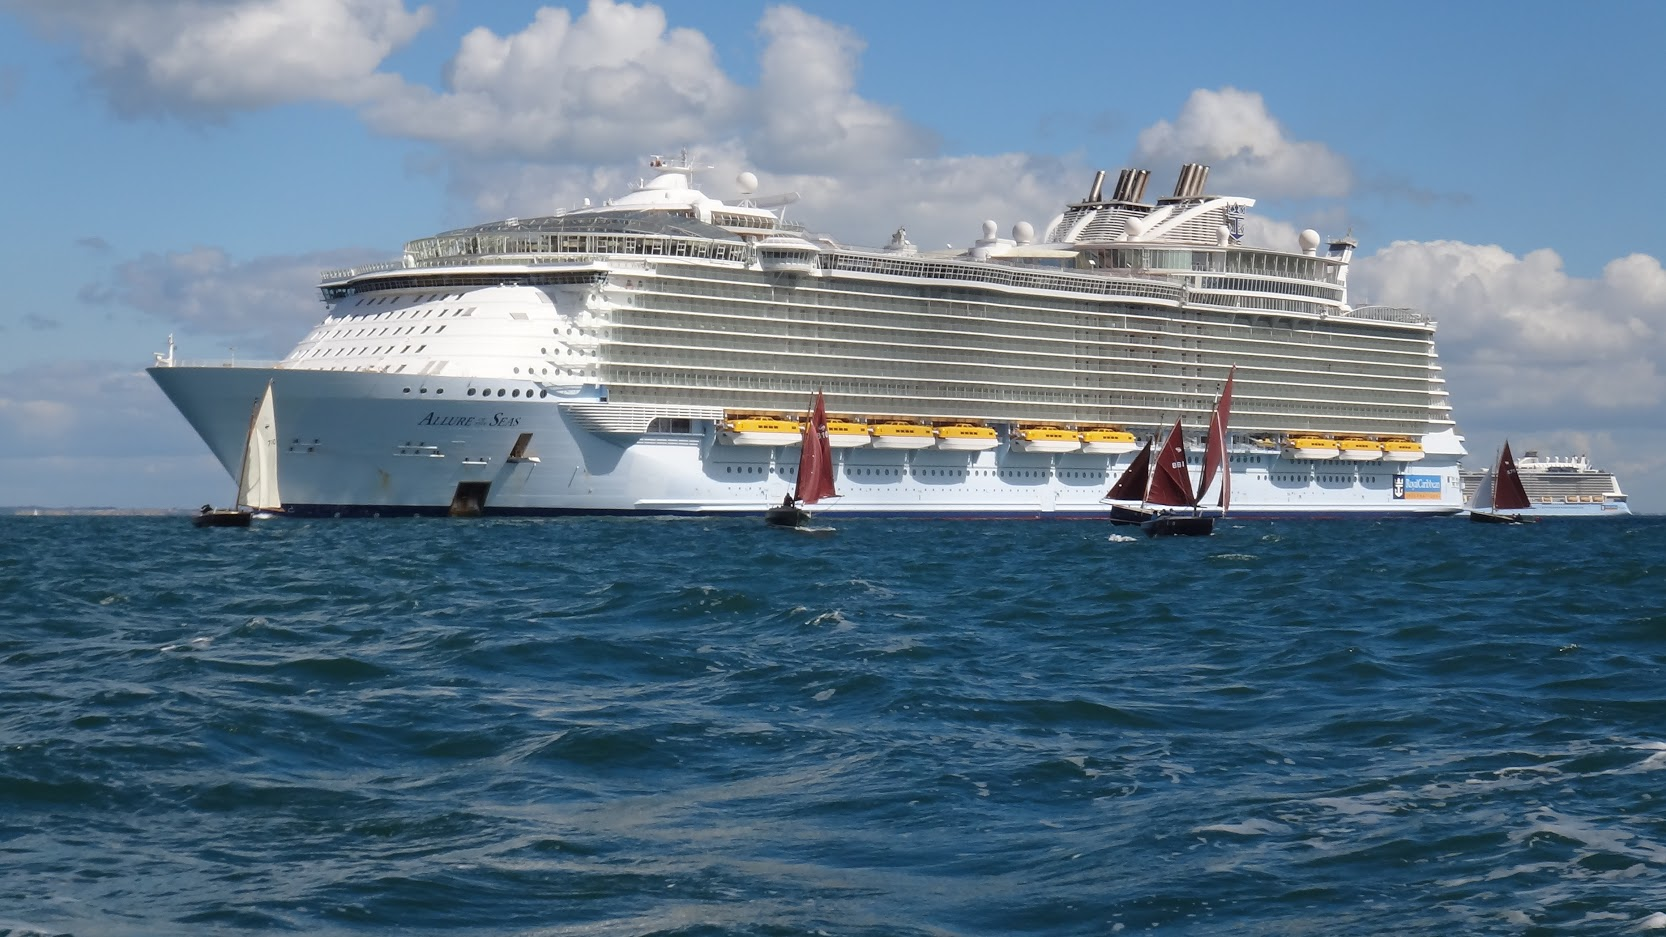 19 Poole Shrimpers, including 7 PYC boats sail around one of the biggest passenger ships in the world